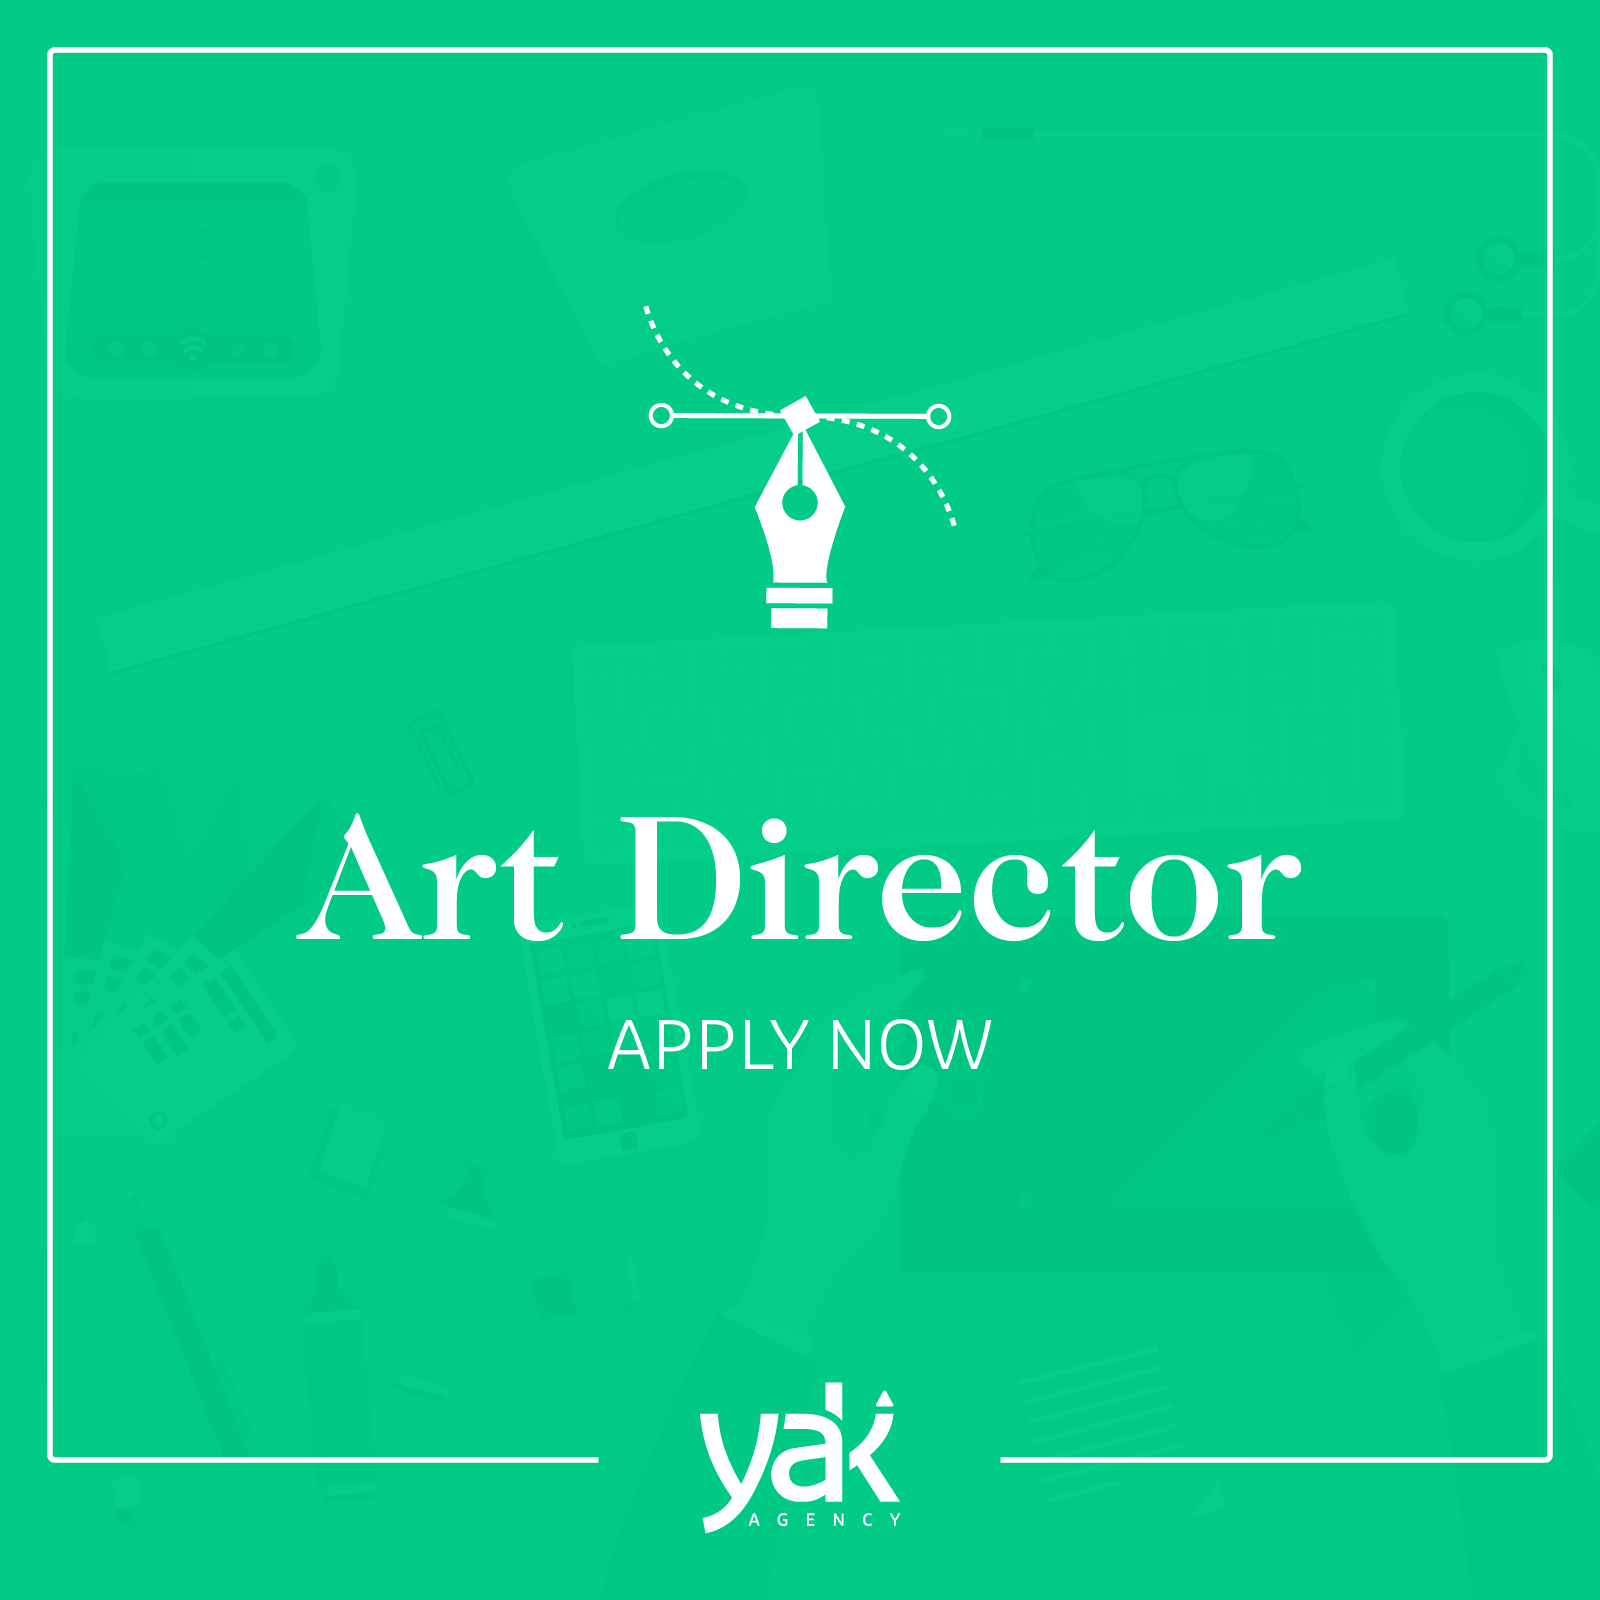 Job opening yak agency hires an art director yak agency for Jobs art director koln